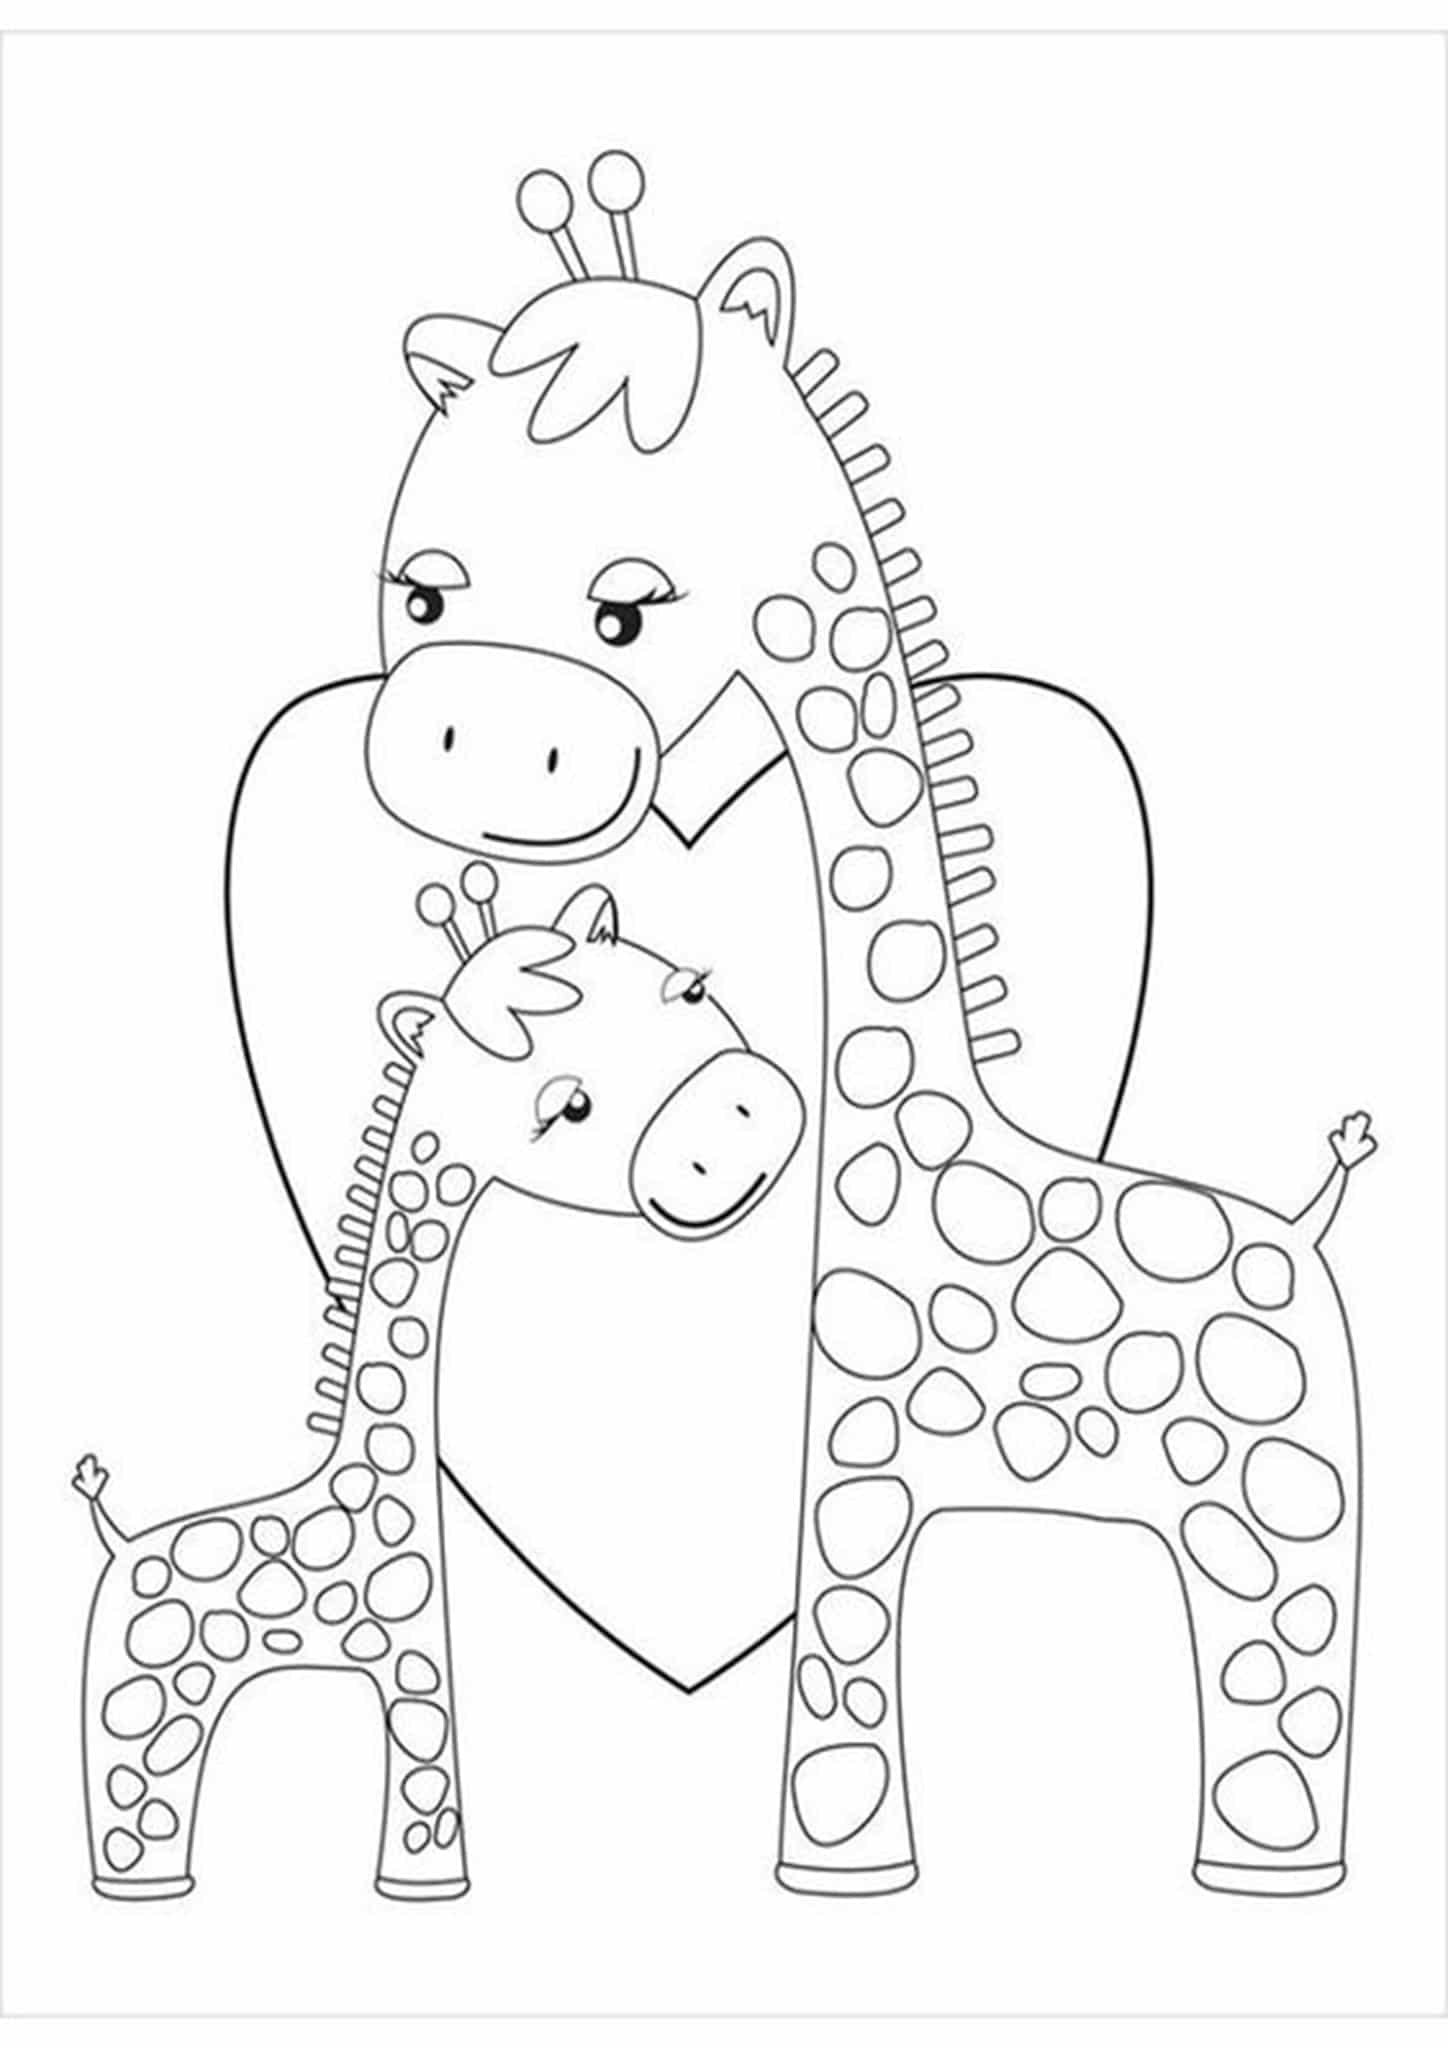 colouring pages of giraffe free easy to print giraffe coloring pages tulamama pages colouring giraffe of